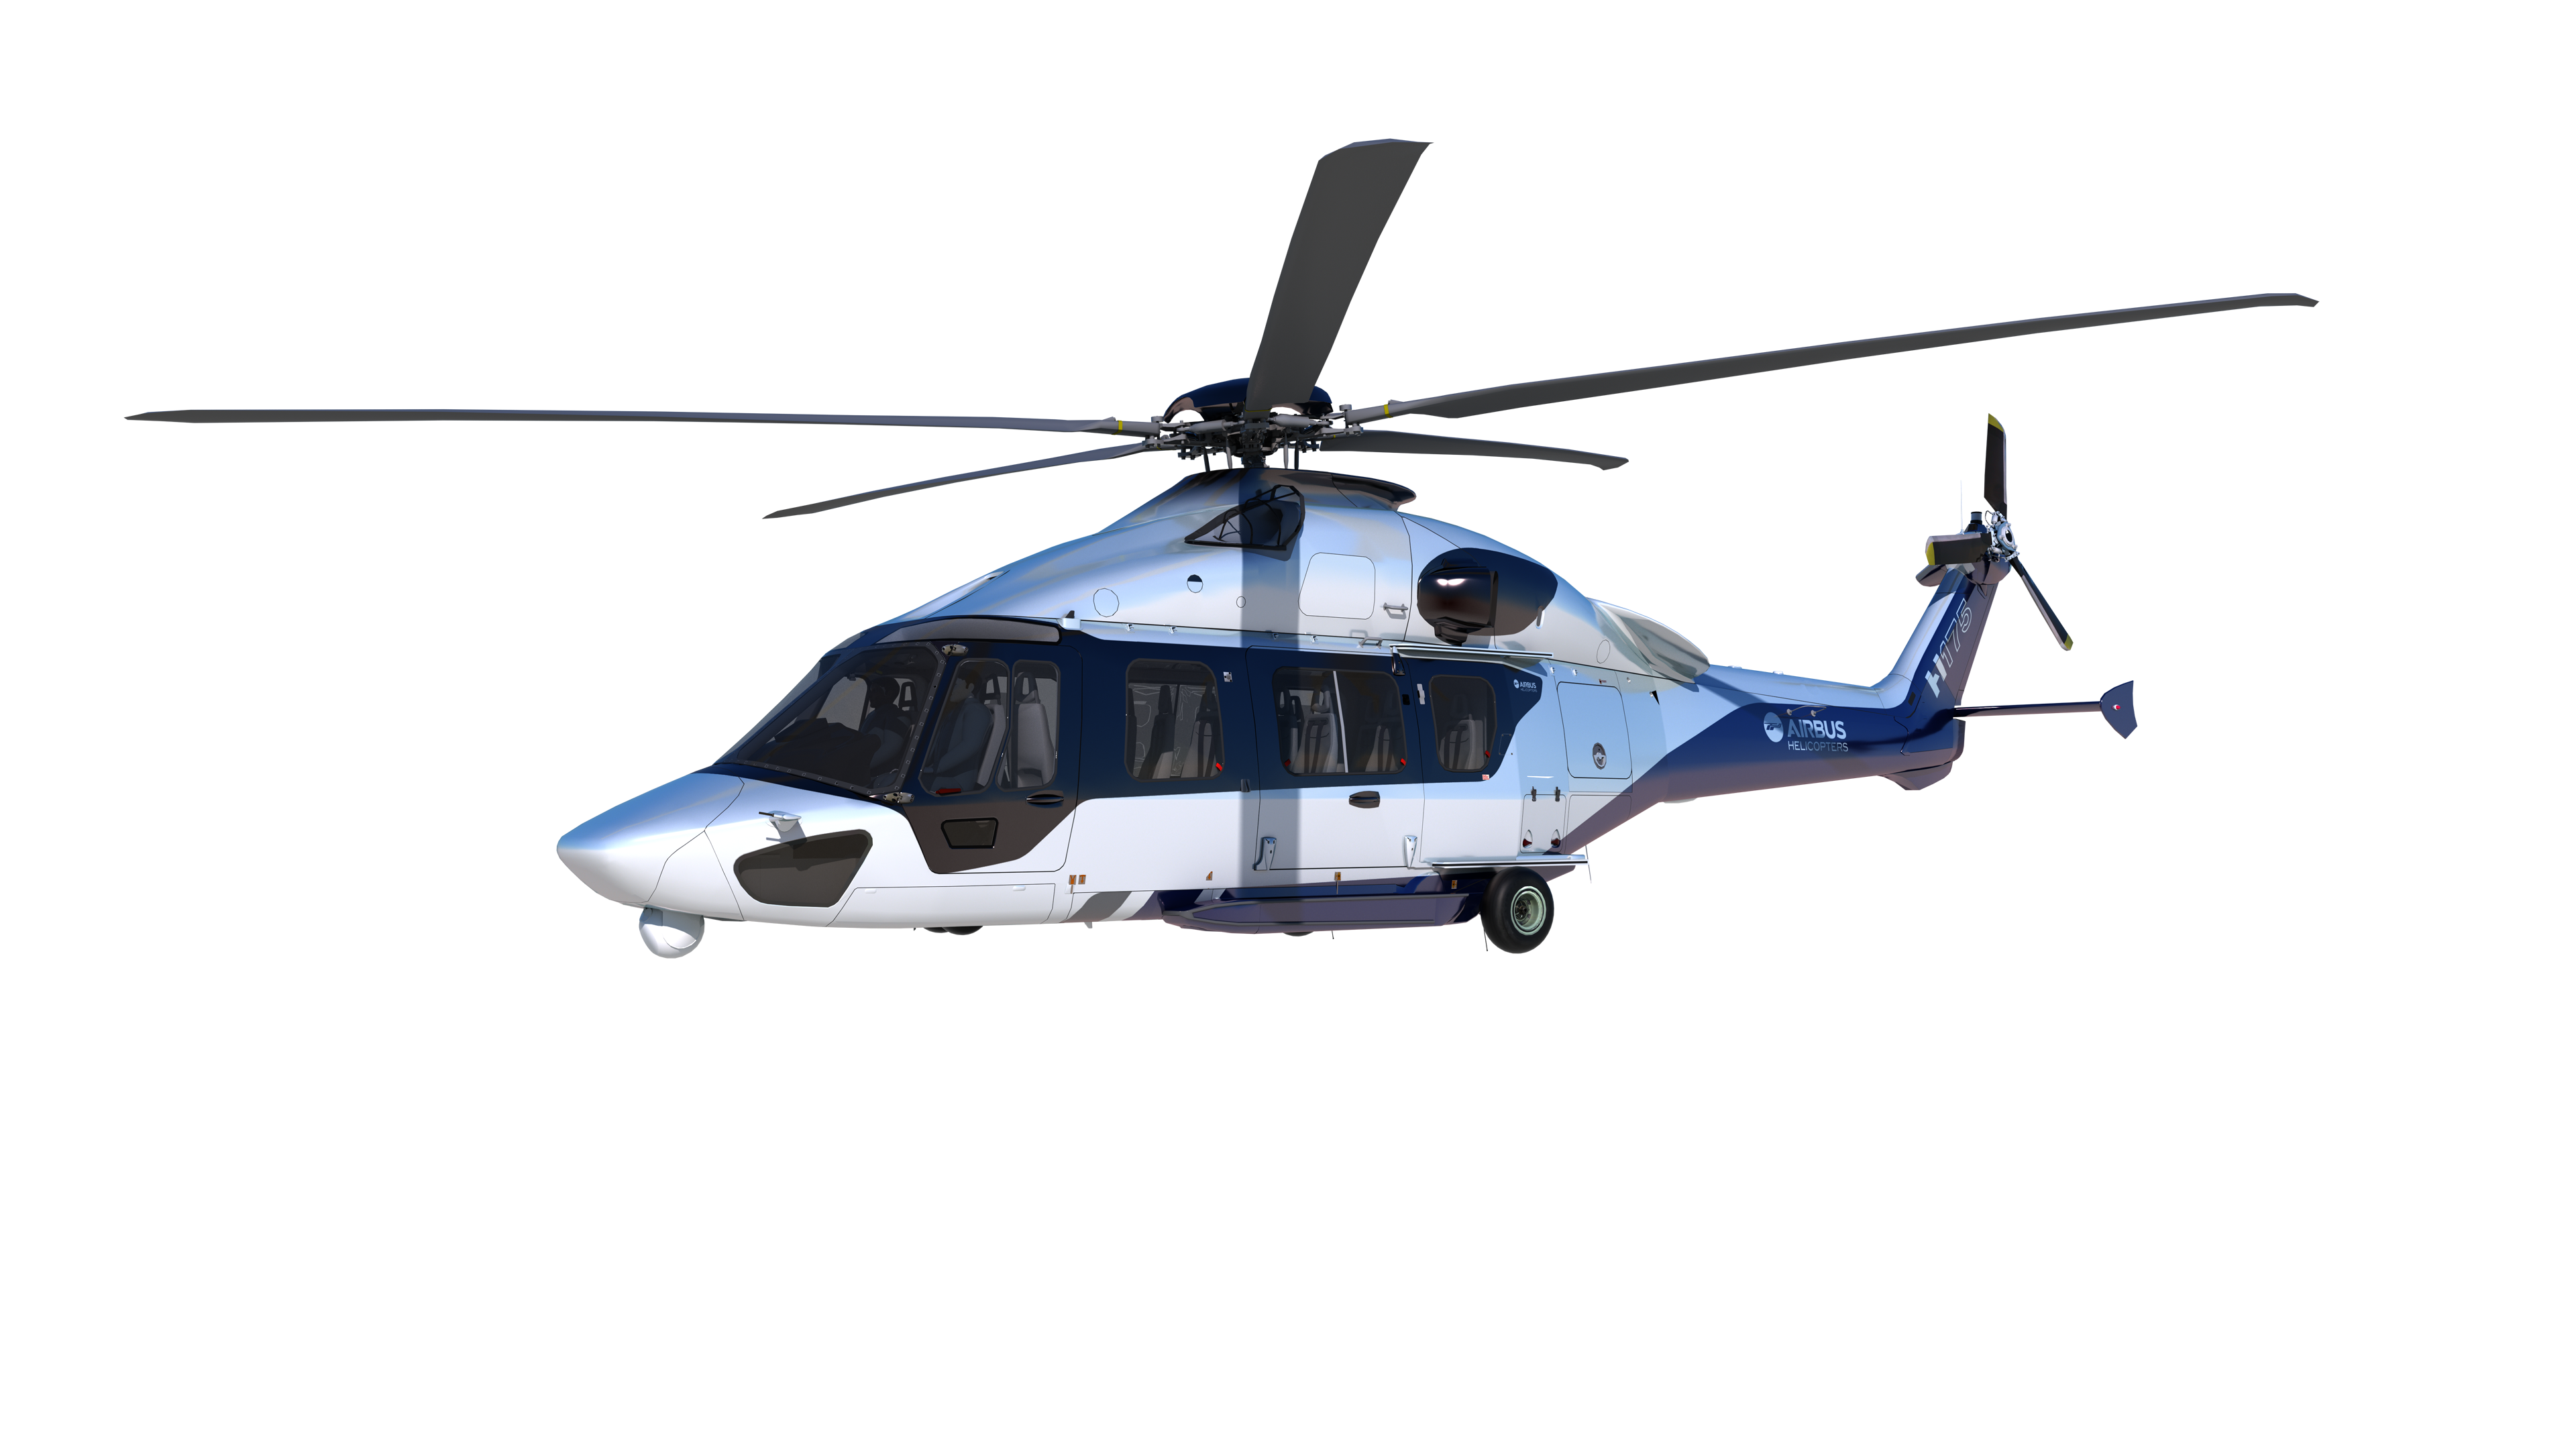 Civil Helicopter And Military Helicopter Airbus Helicopters Military Helicopter Airbus Helicopters Helicopter